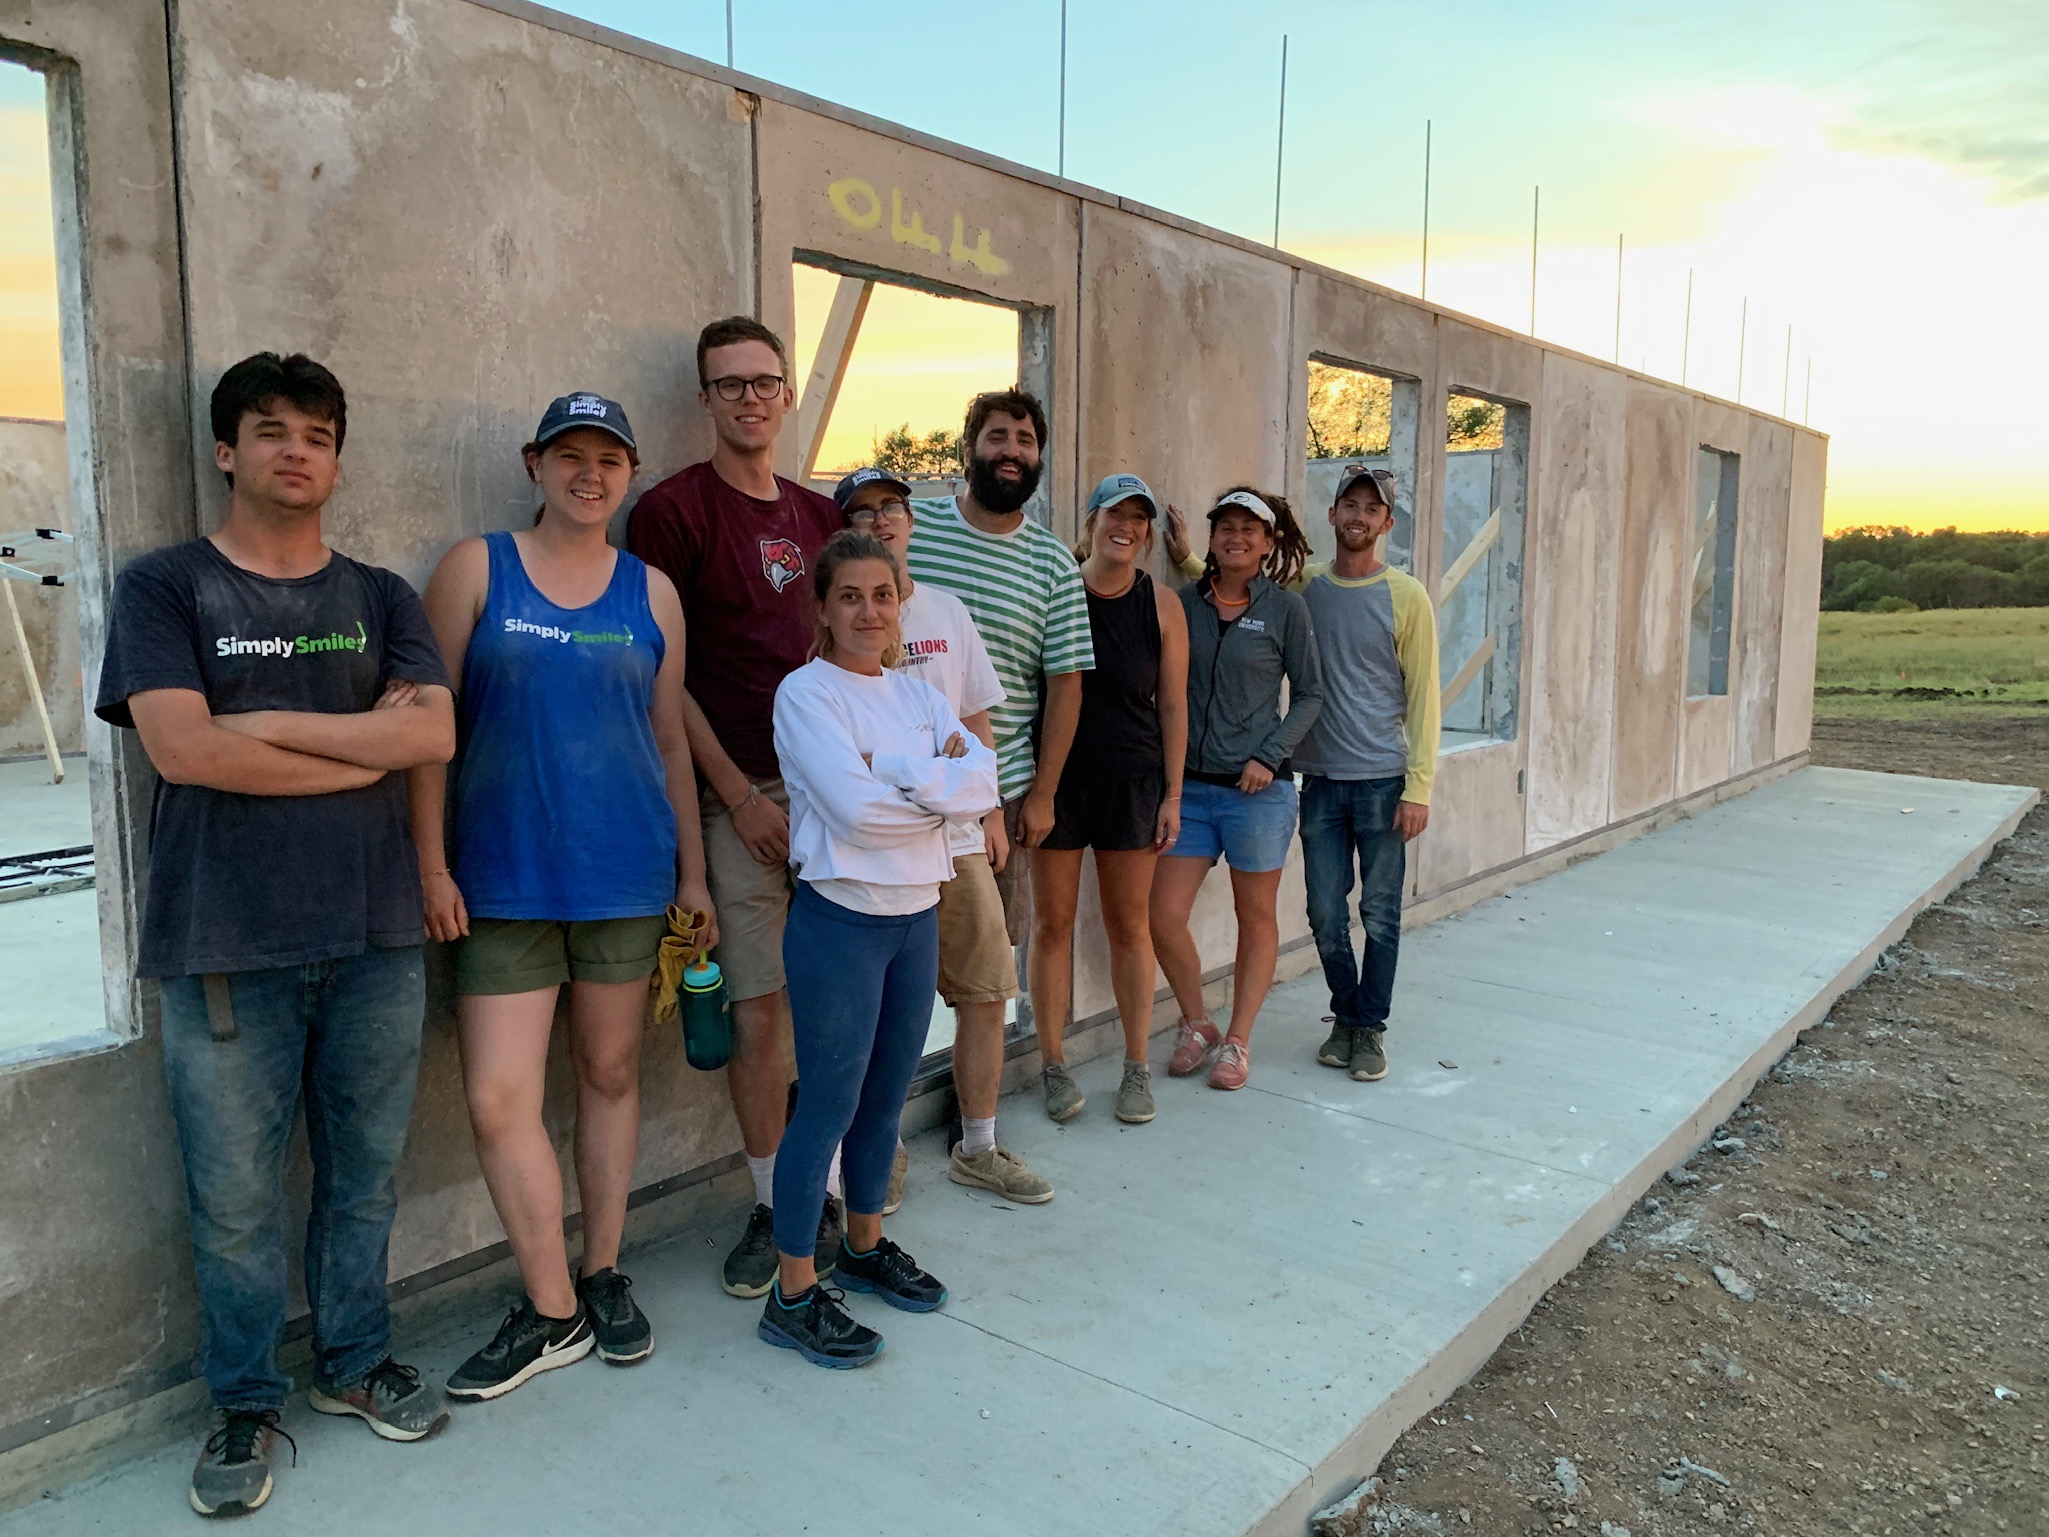 8/3/19: Simply Smiles staff and interns after a full day of construction and installing exterior walls.